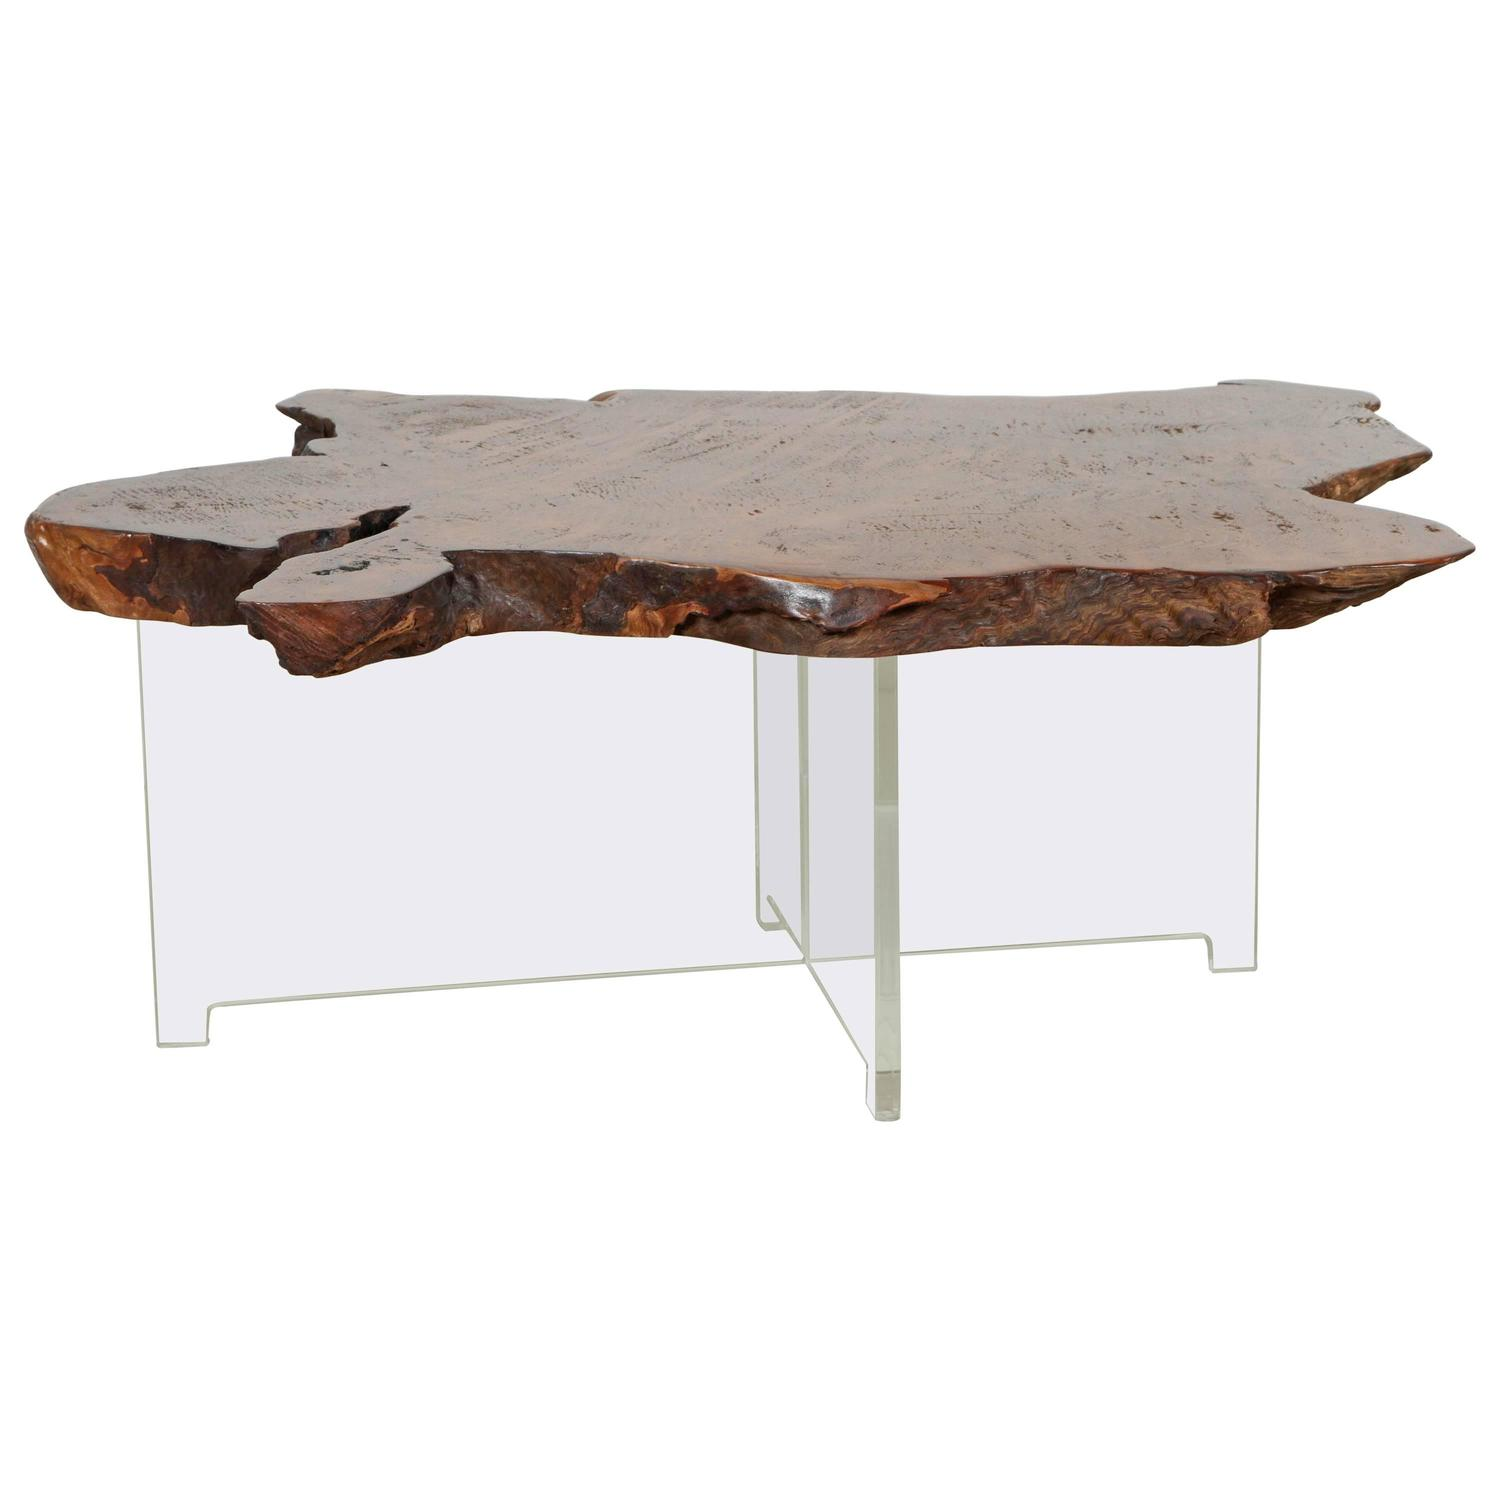 Redlands Coffee Table By Lawson-Fenning For Sale At 1stdibs